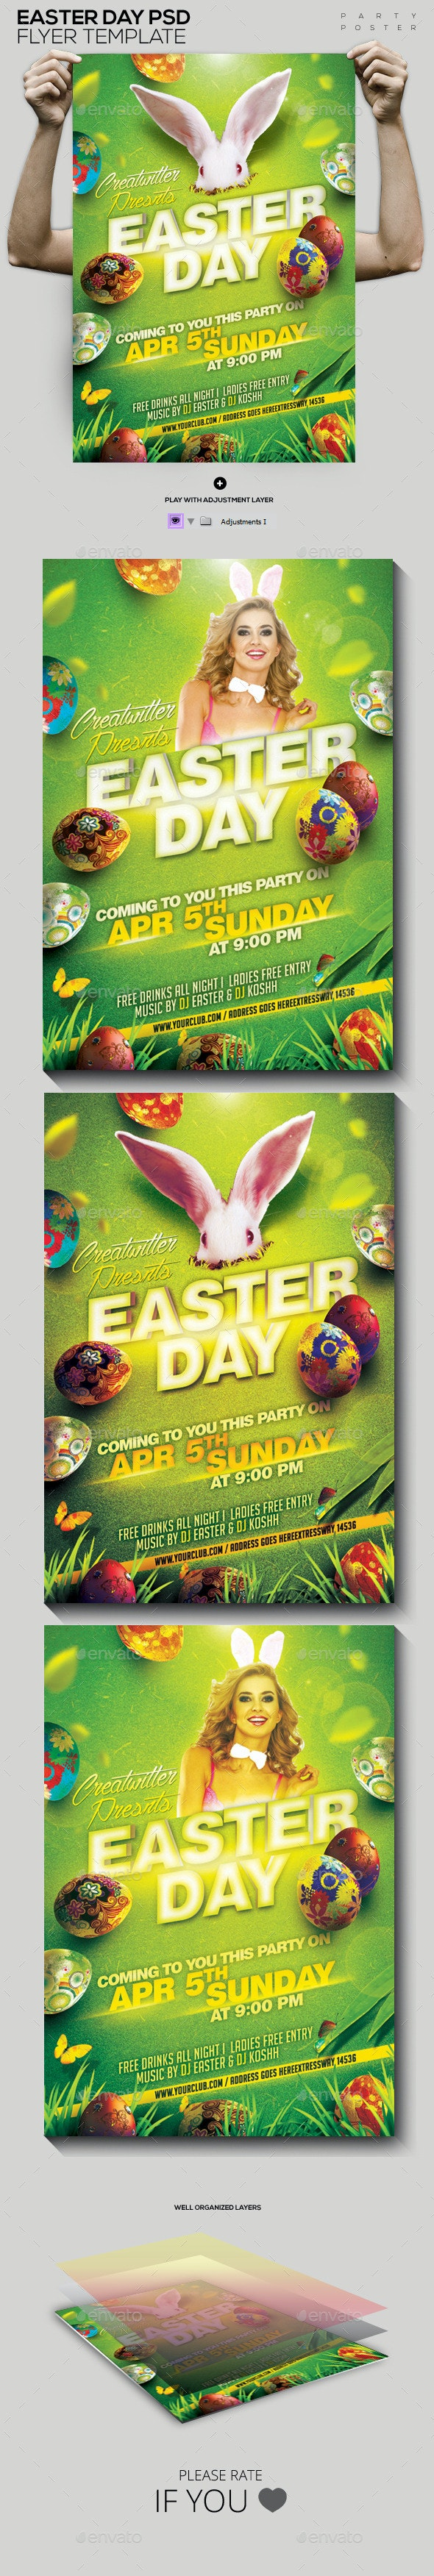 Easter Day PSD Template Flyer/Poster - Holidays Events